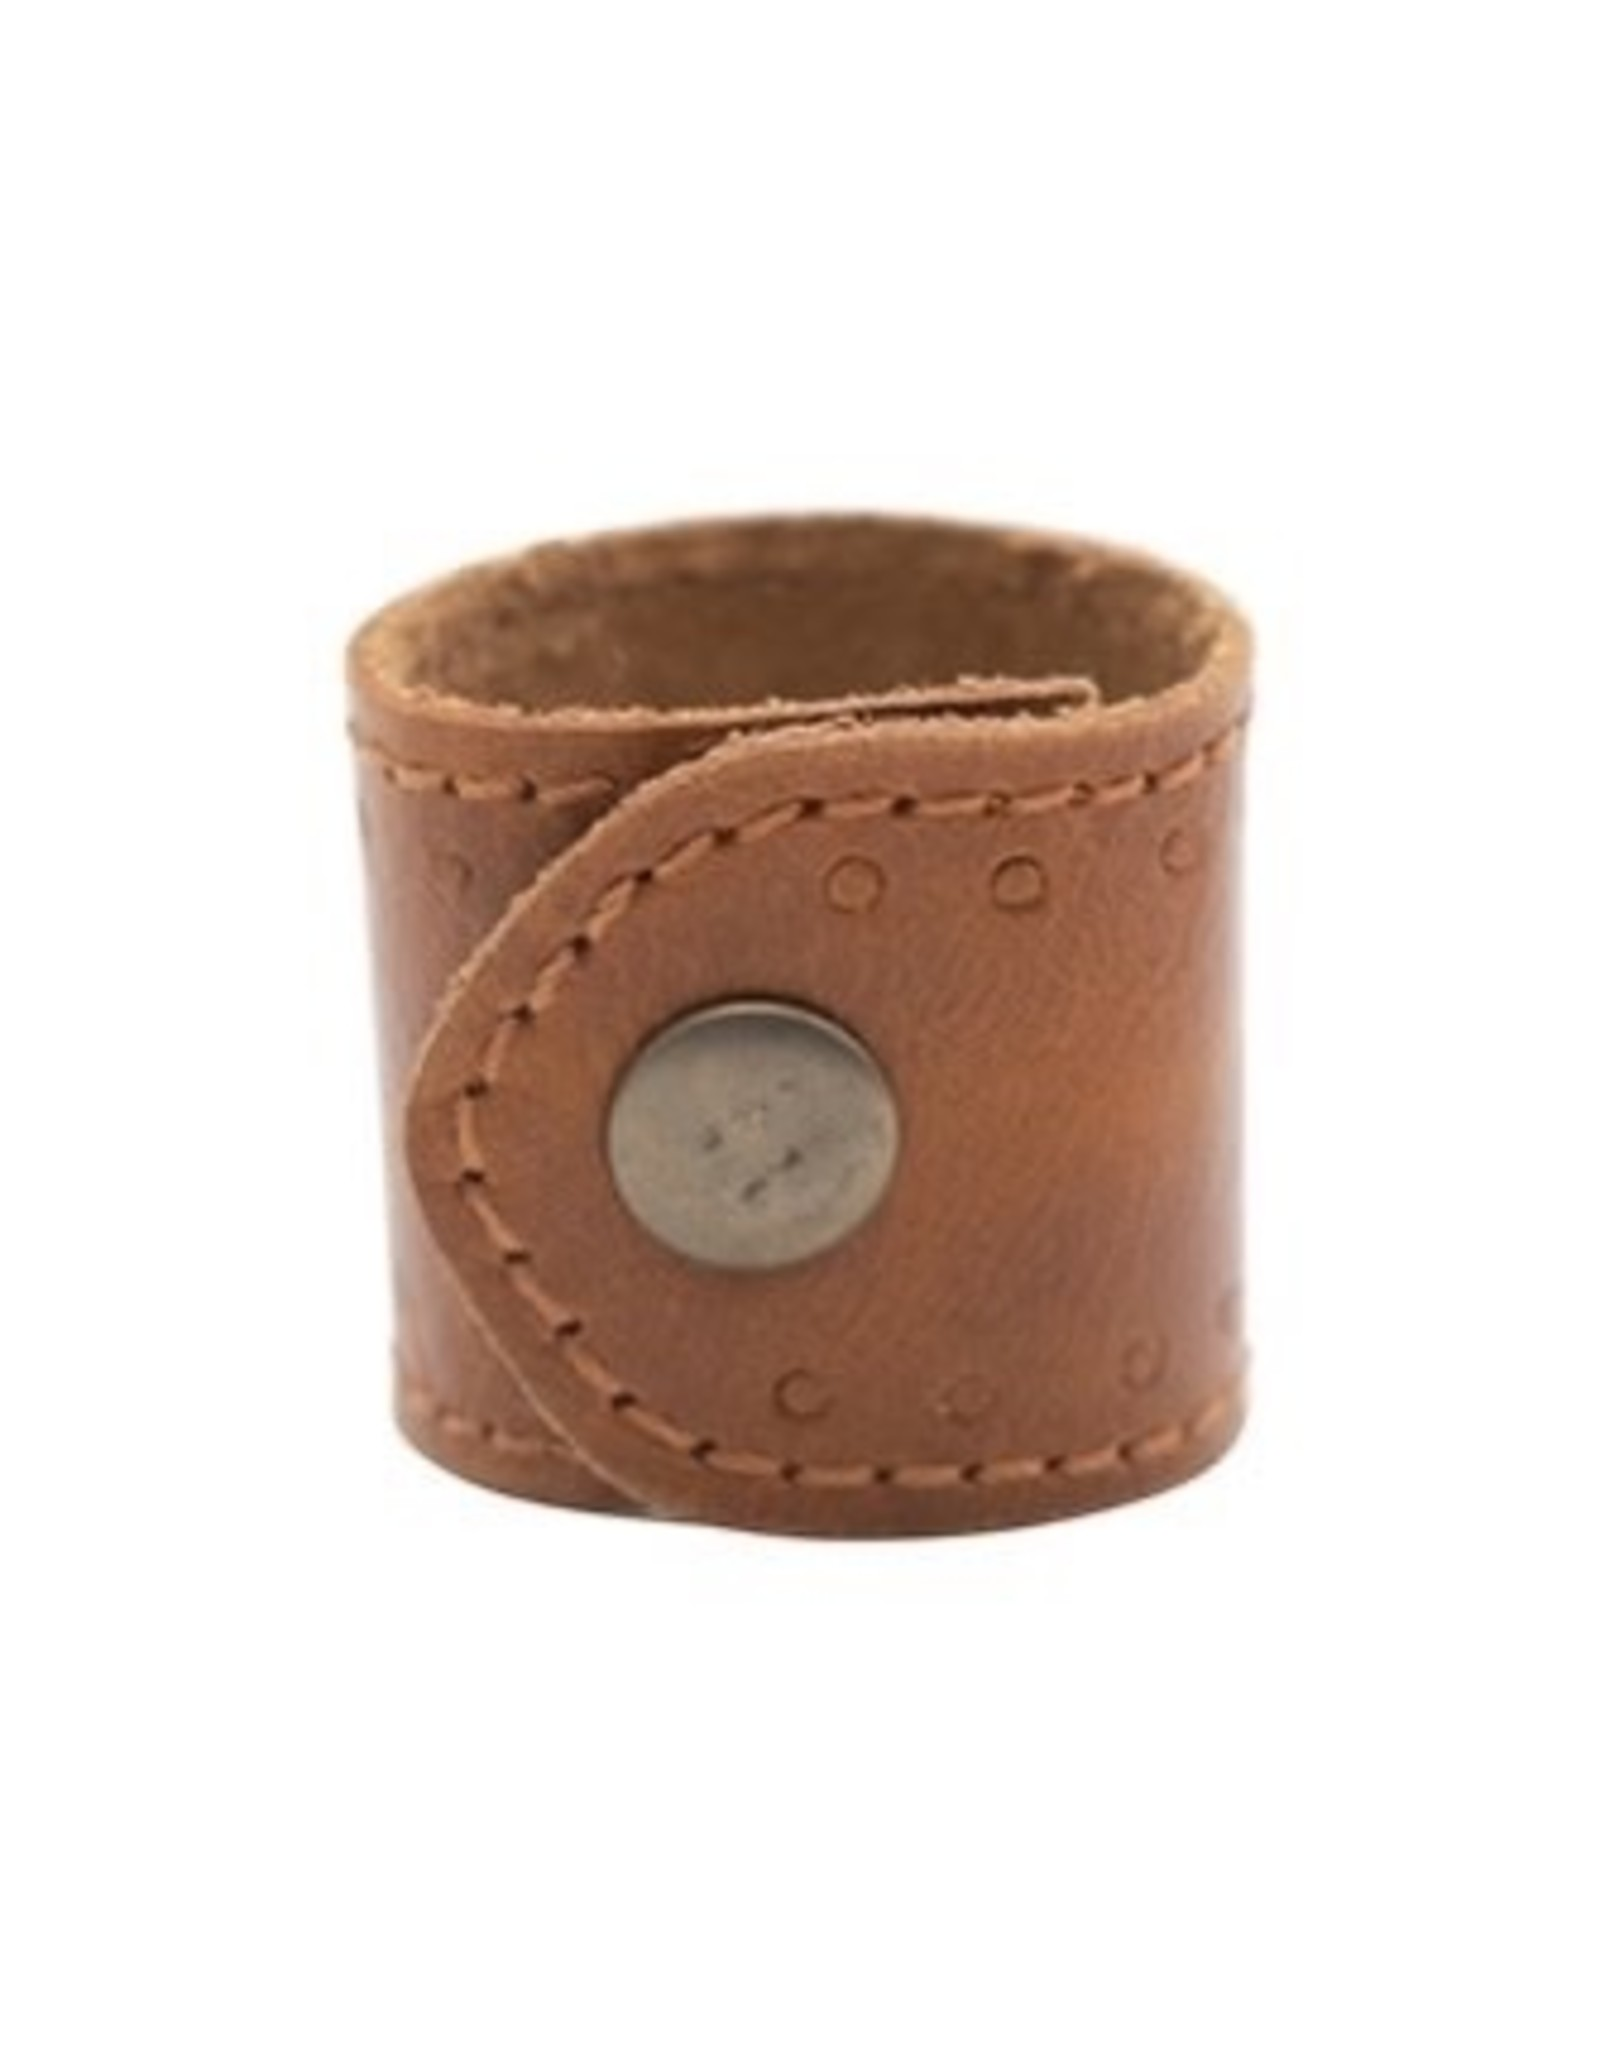 The Florist & The Merchant Leather Napkin Ring w/Snap Closure